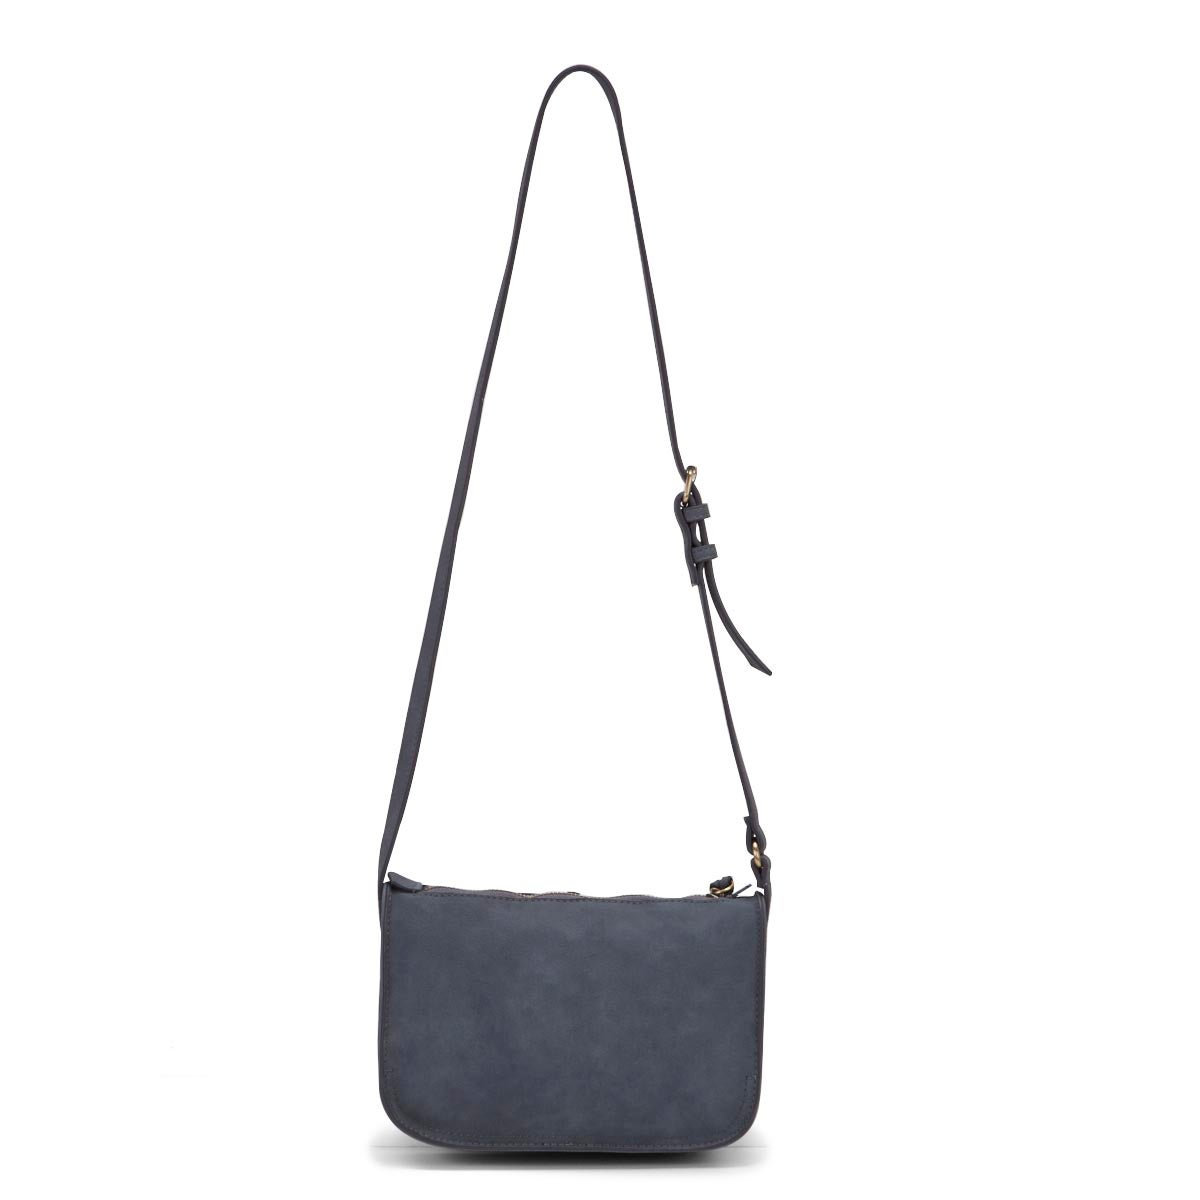 Lds pond blue small crossbody bag